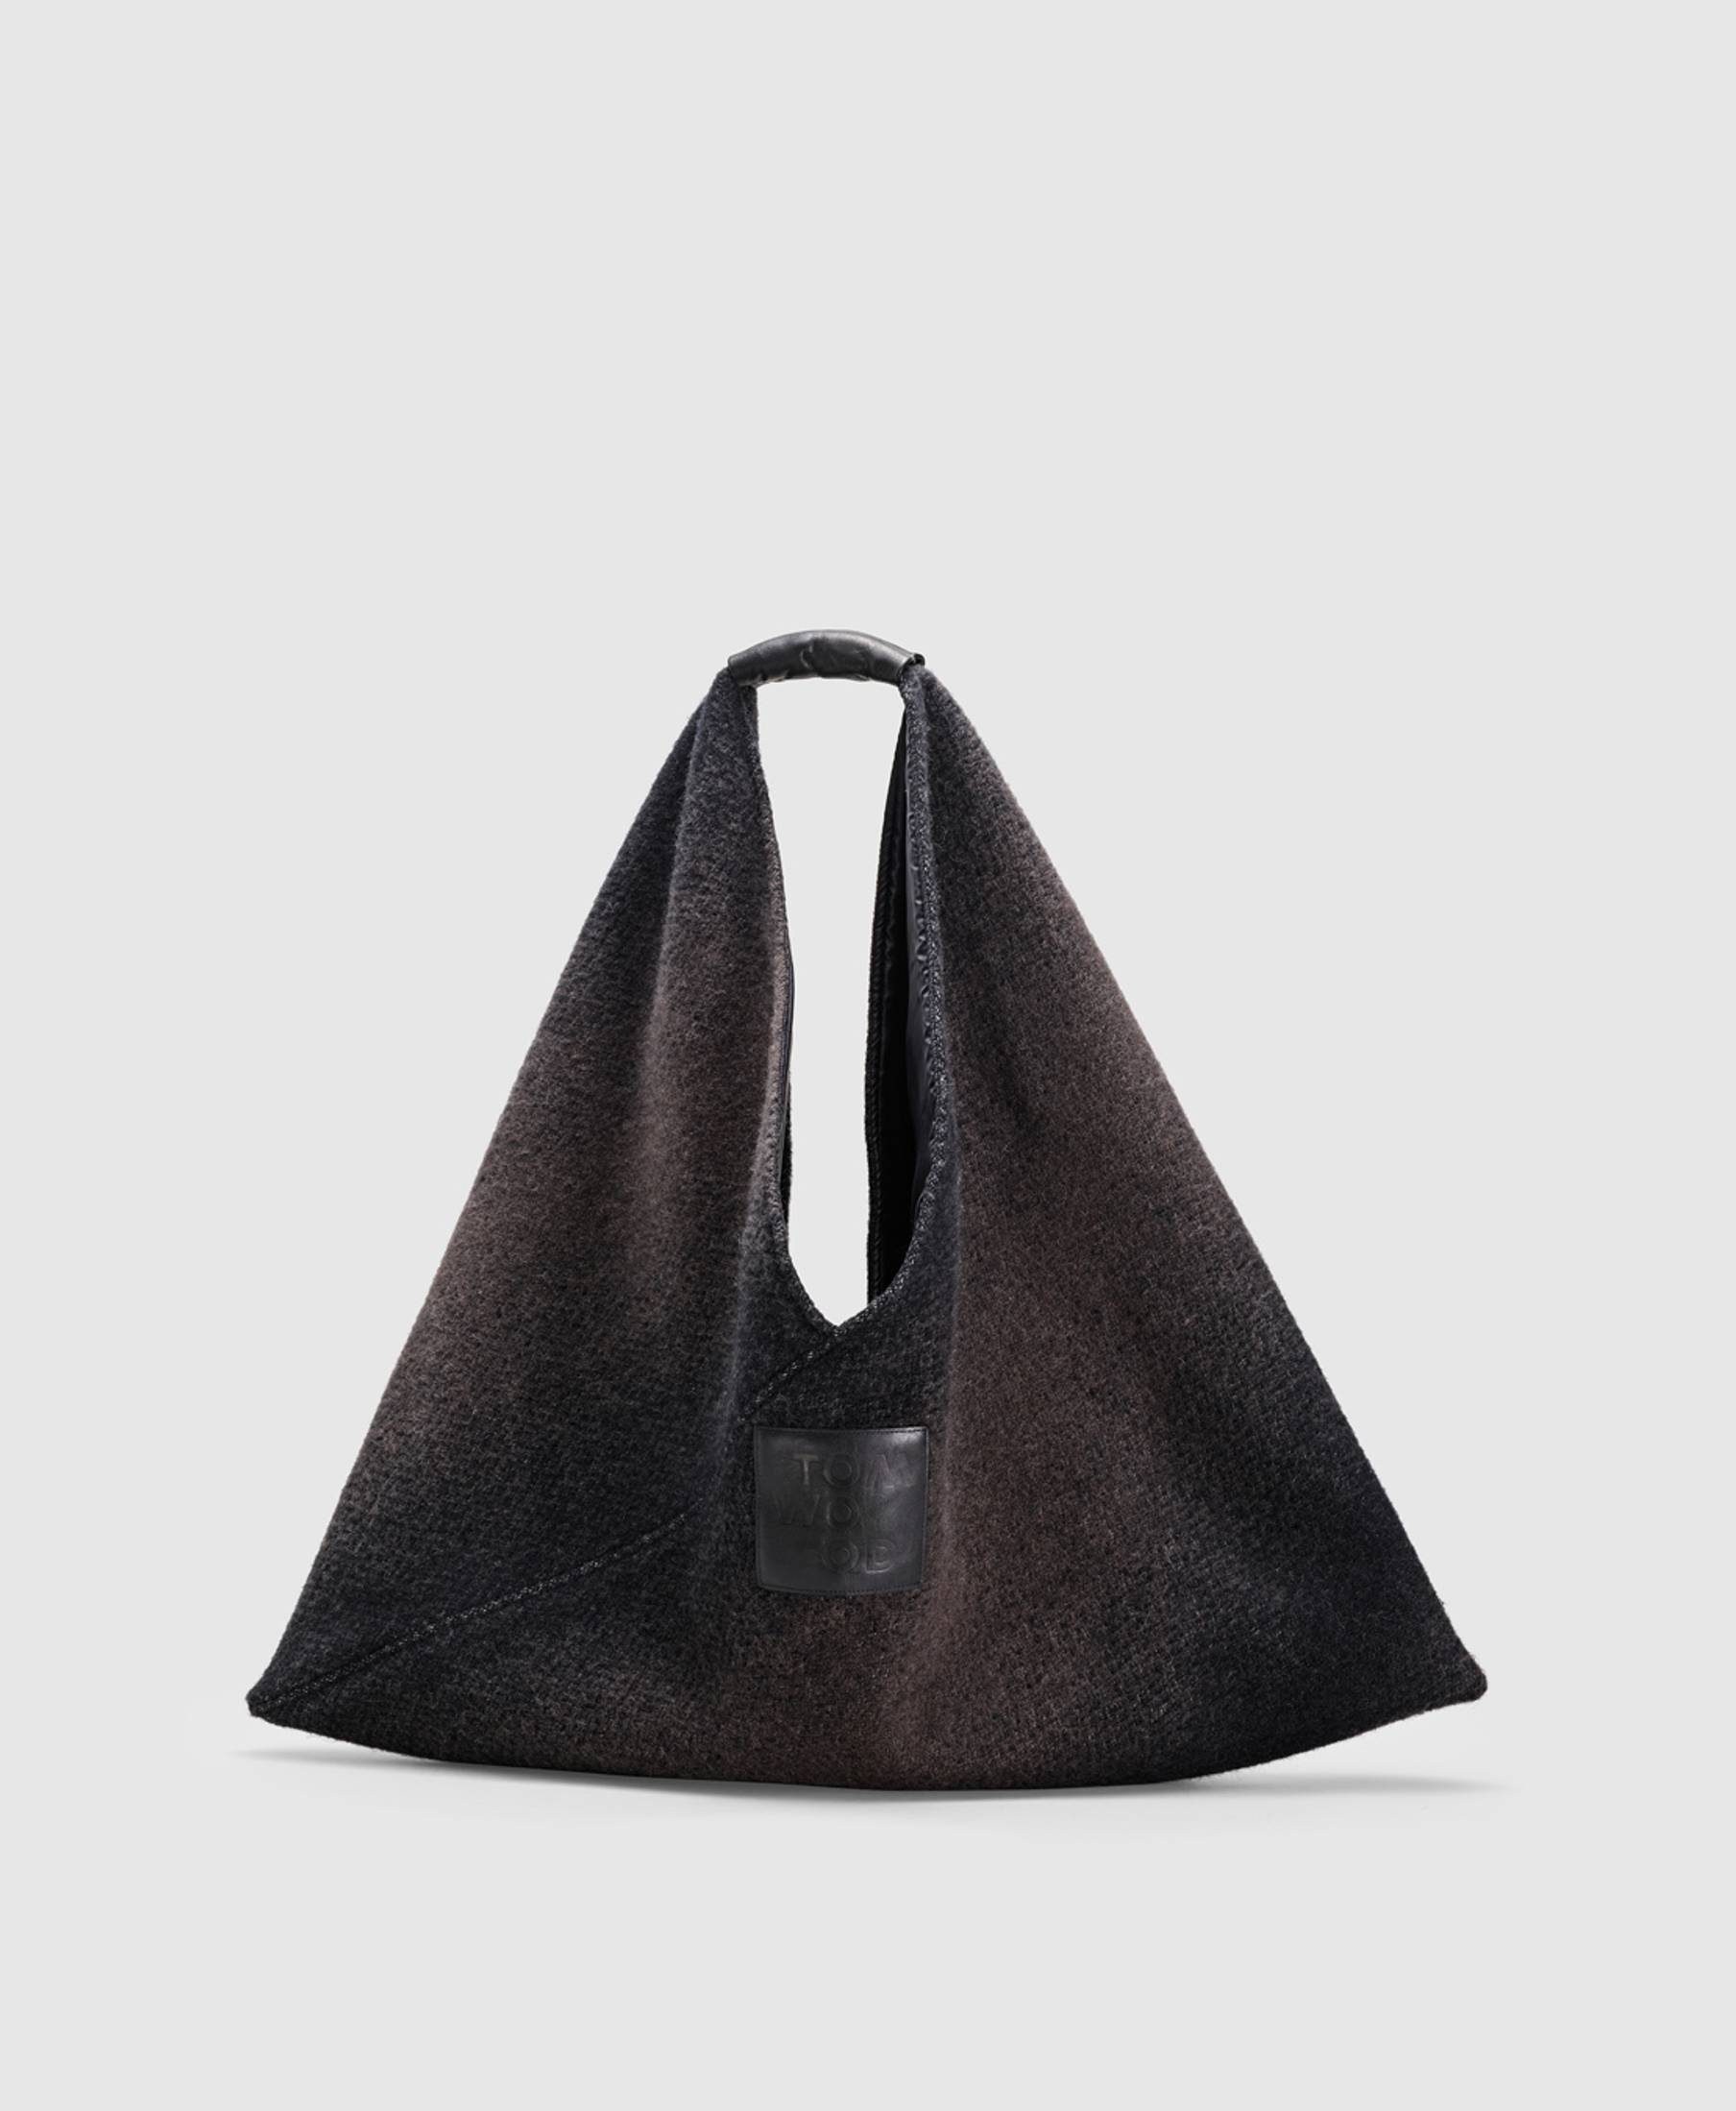 Triangle Bag Gradient Black